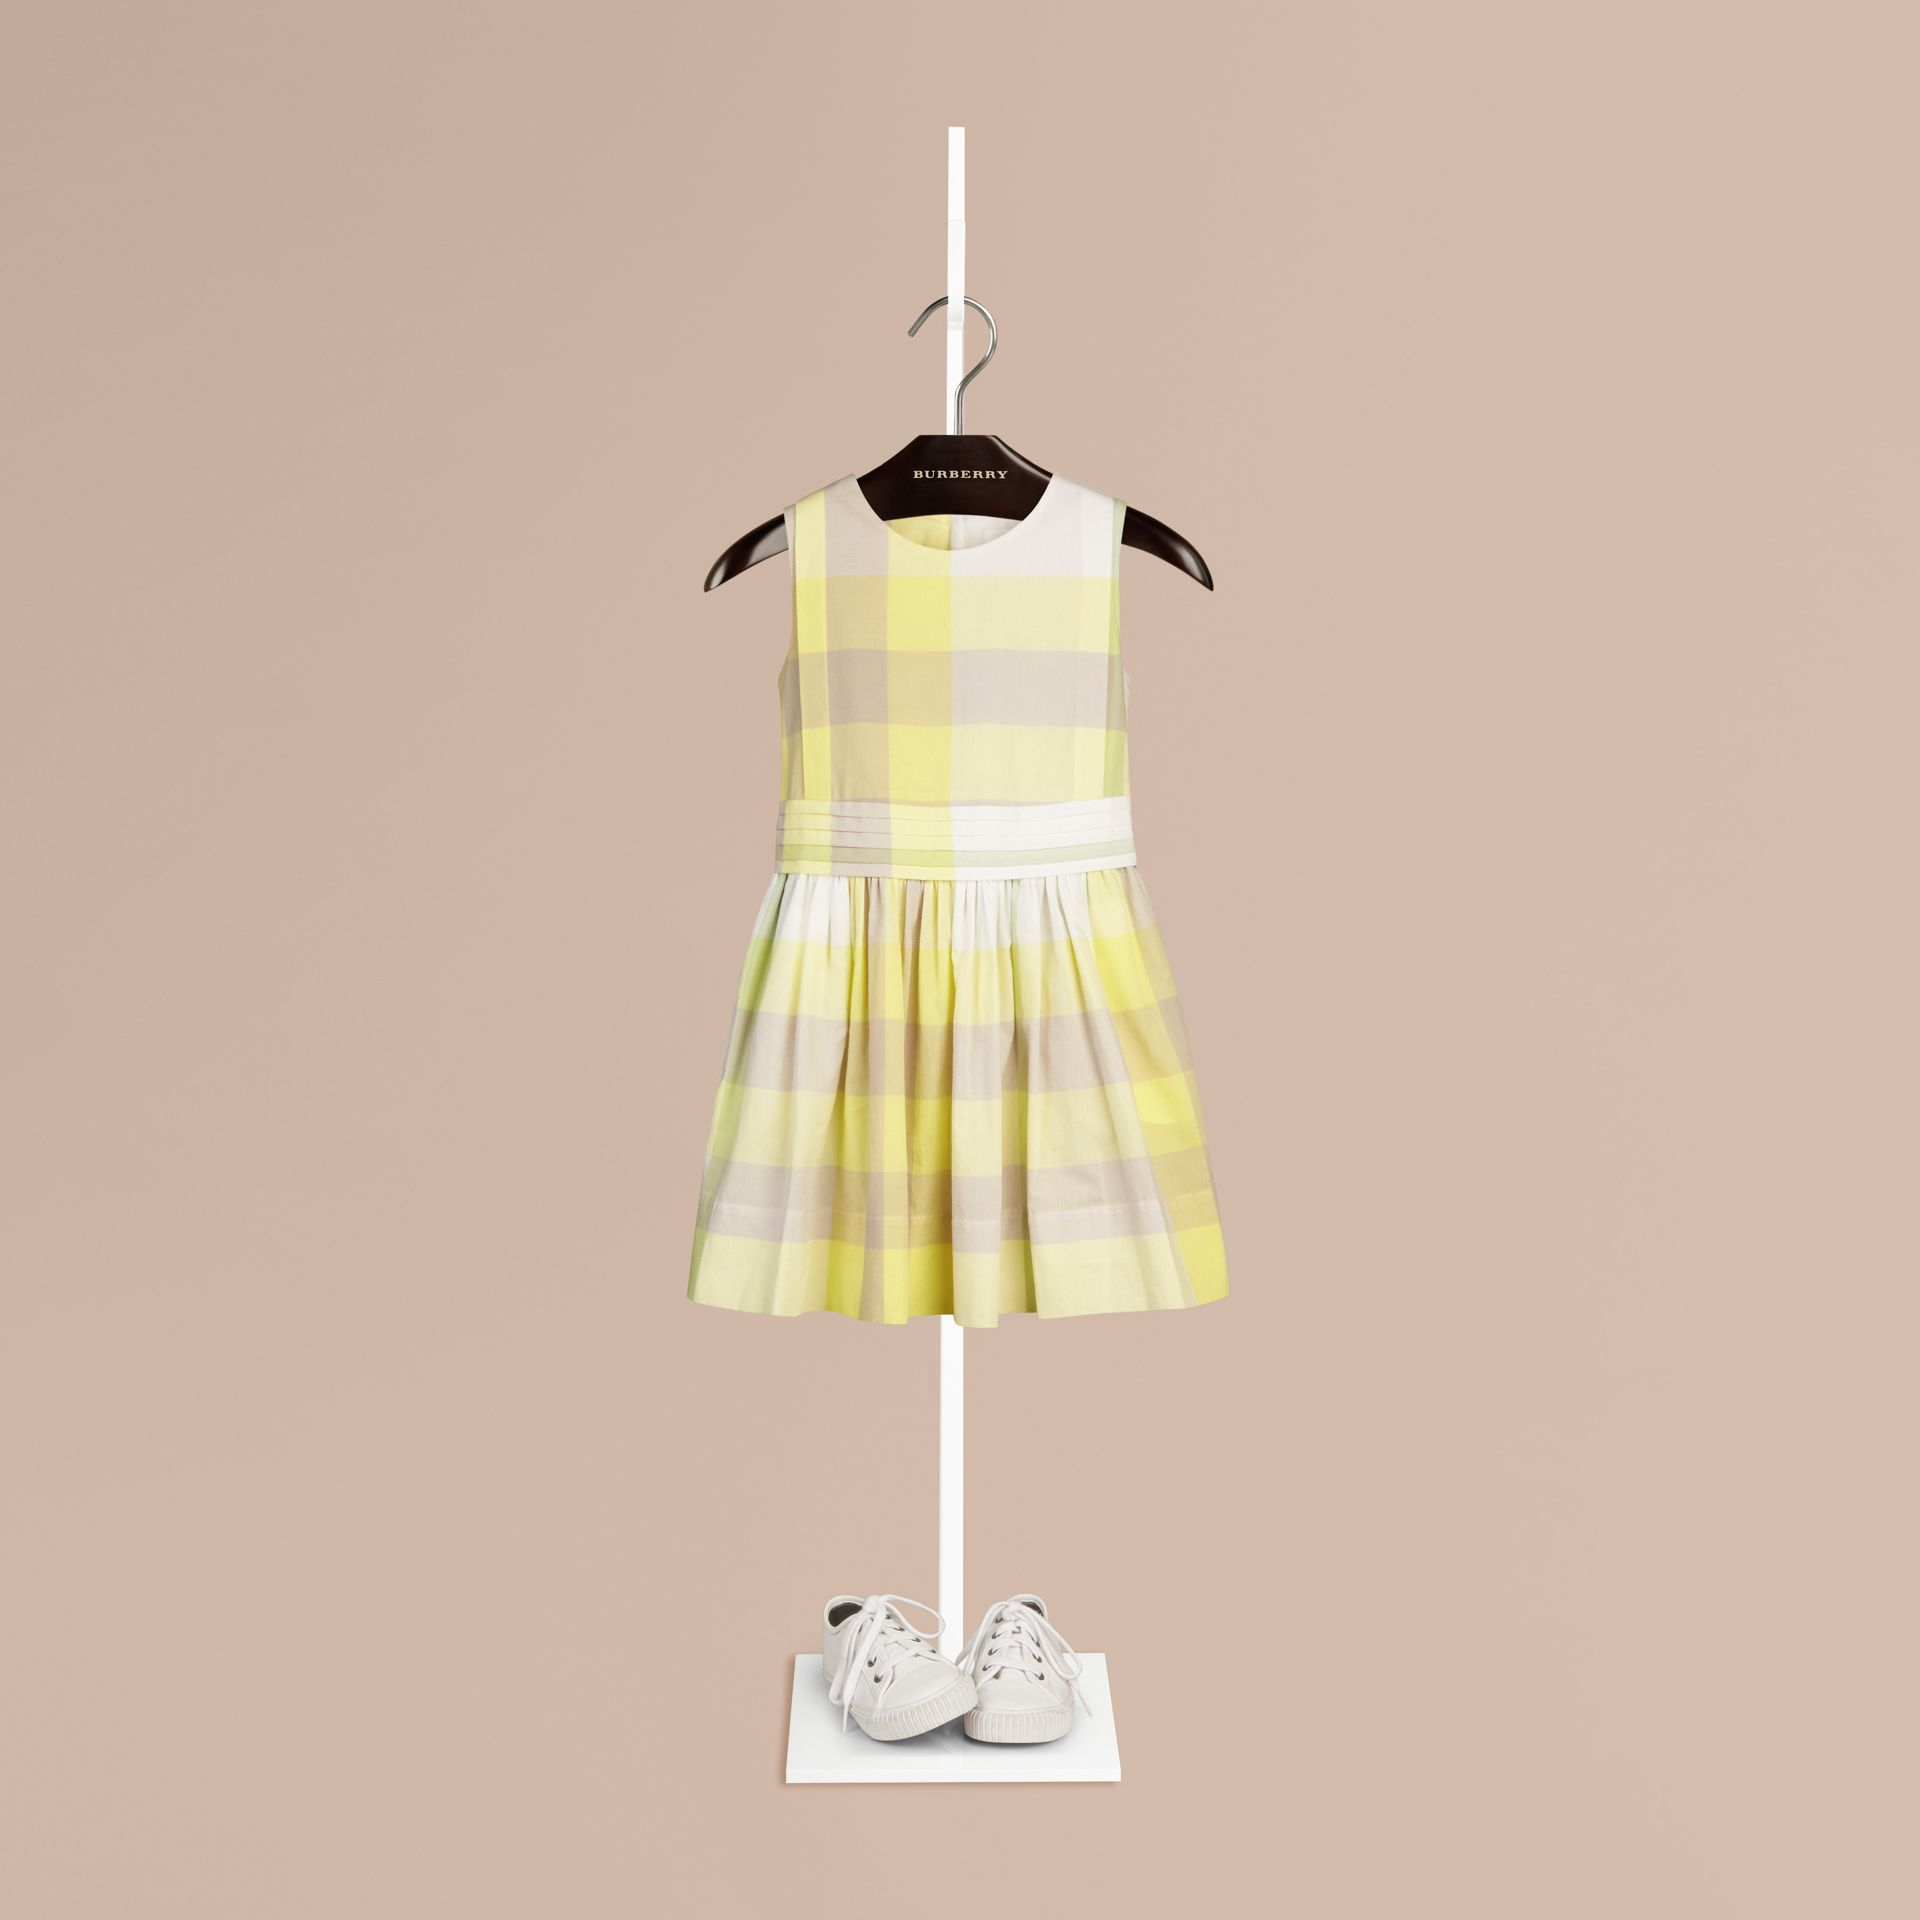 Pale lemon Sleeveless Check Cotton Dress Pale Lemon - gallery image 1